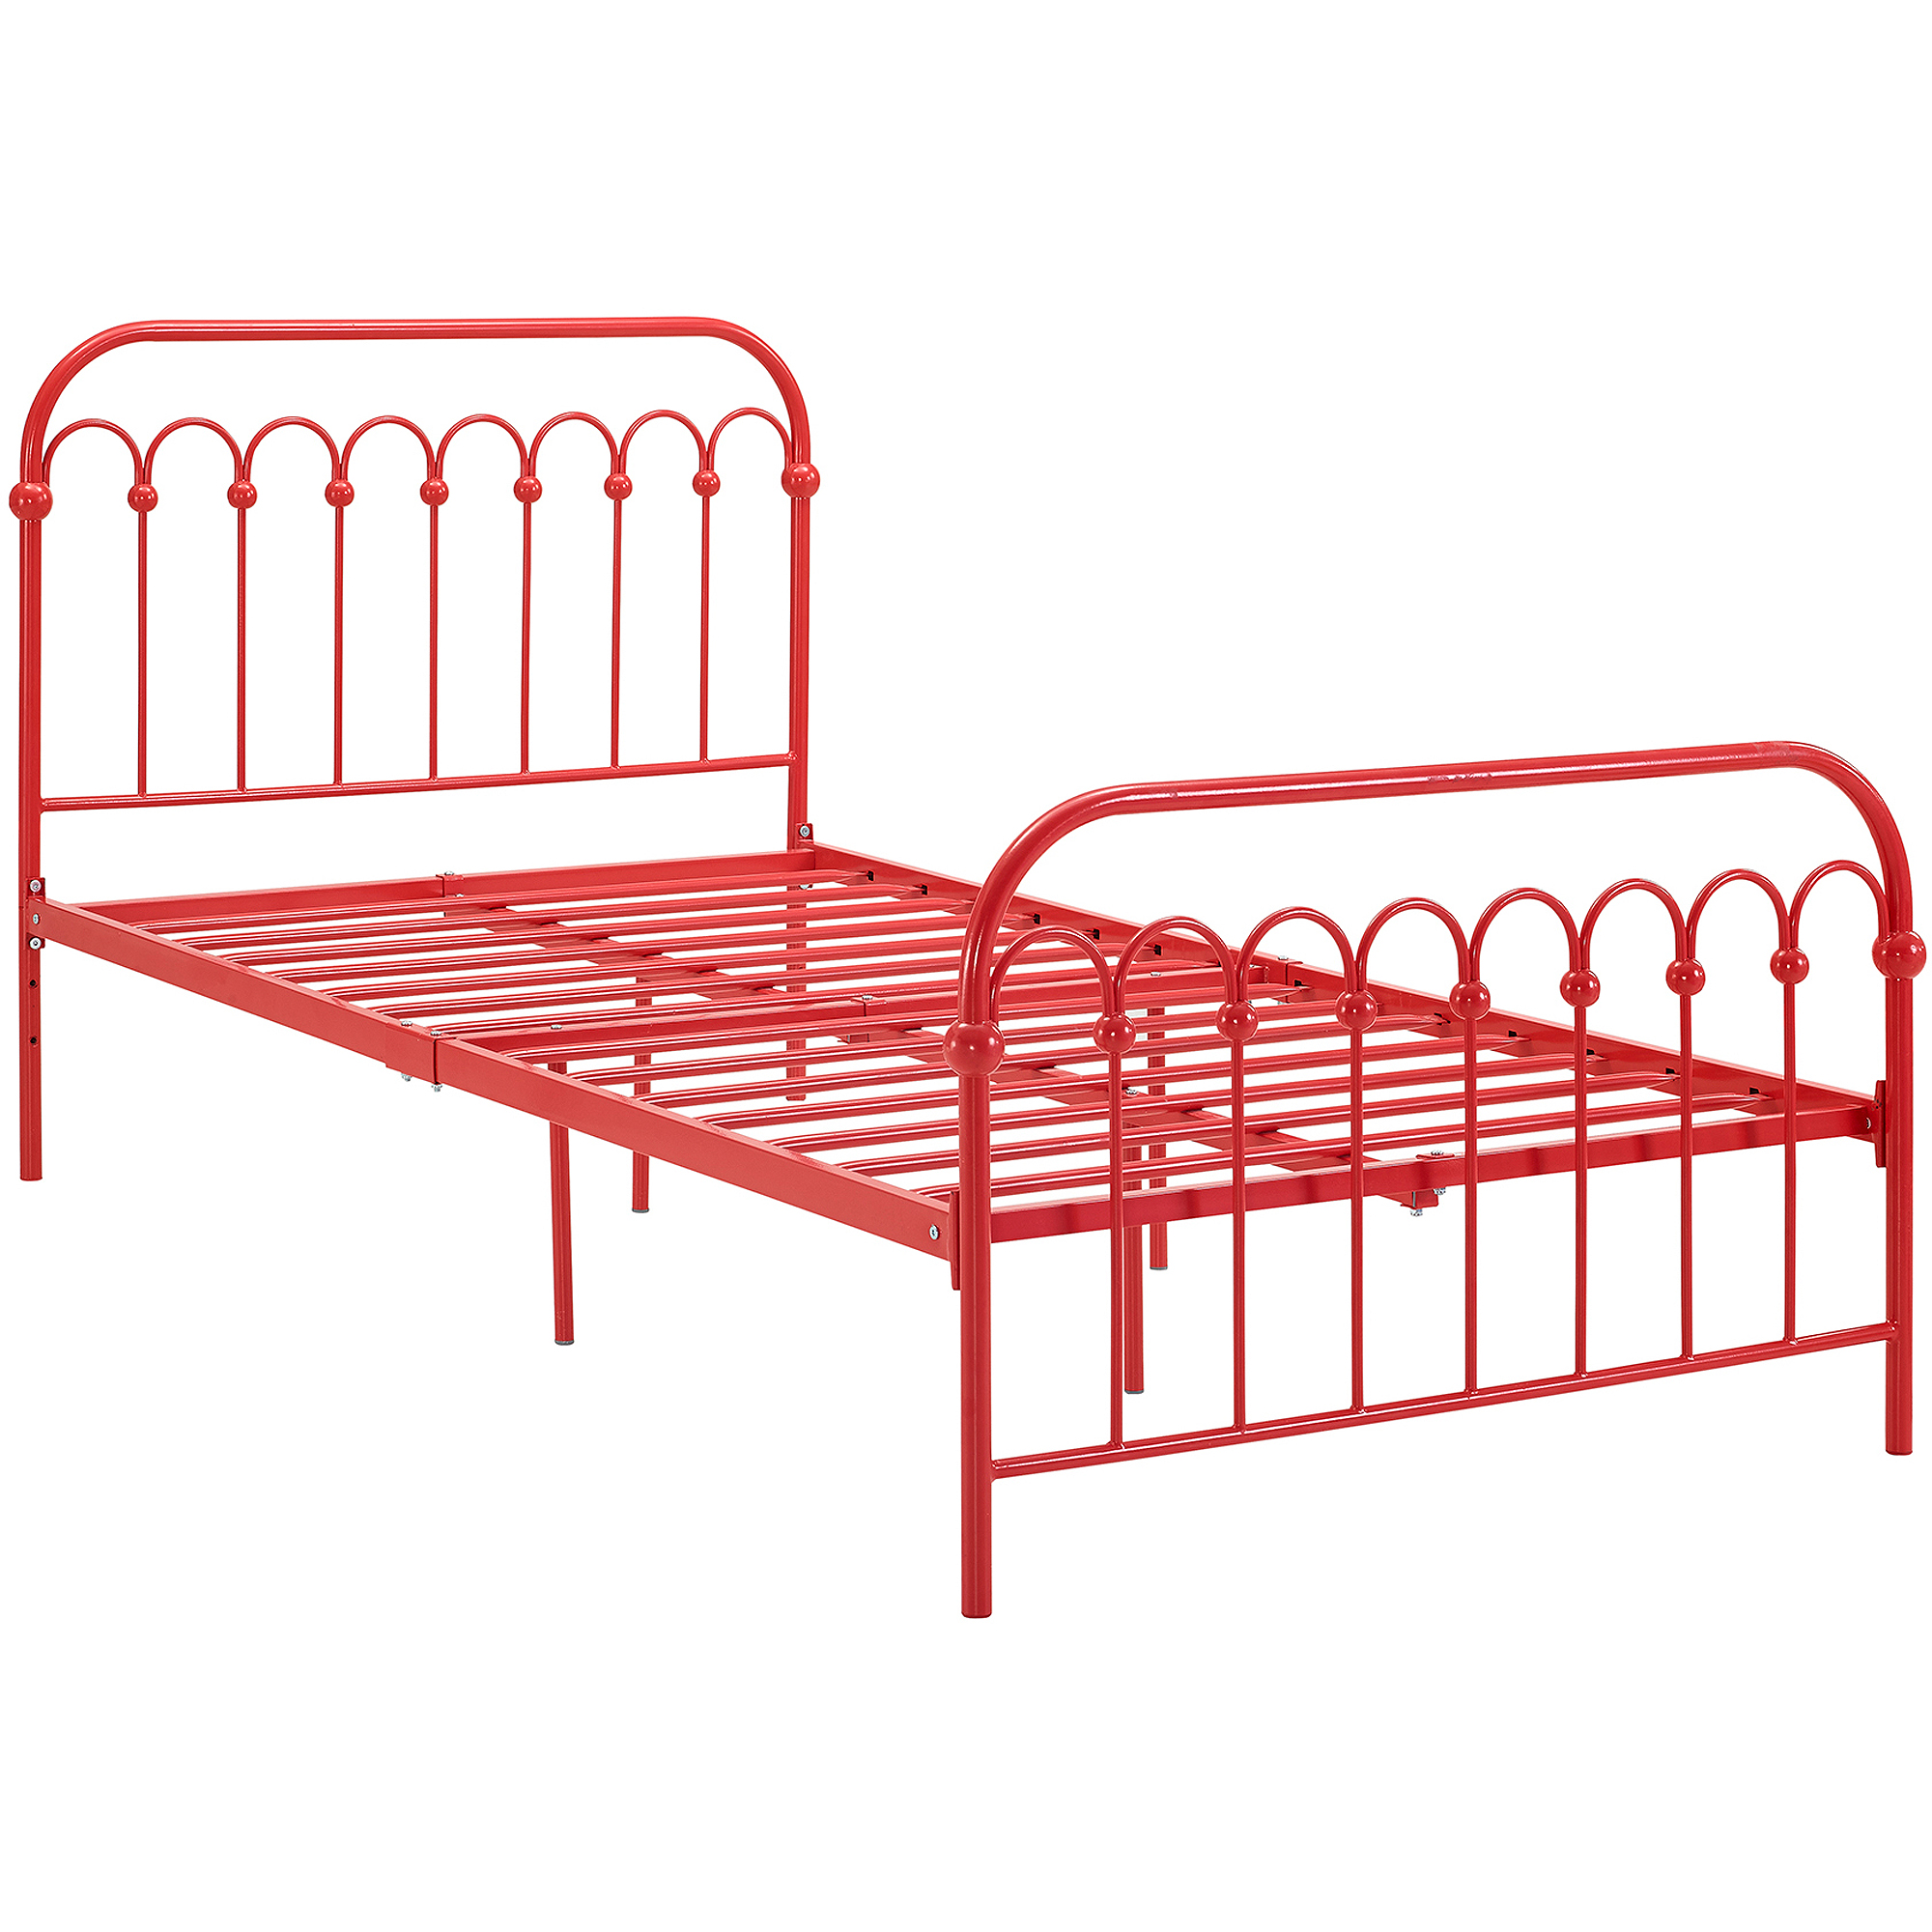 Twin metal bed frame with wheels - 9 By Novogratz Bright Pop Twin Metal Bed Multiple Colors Walmart Com